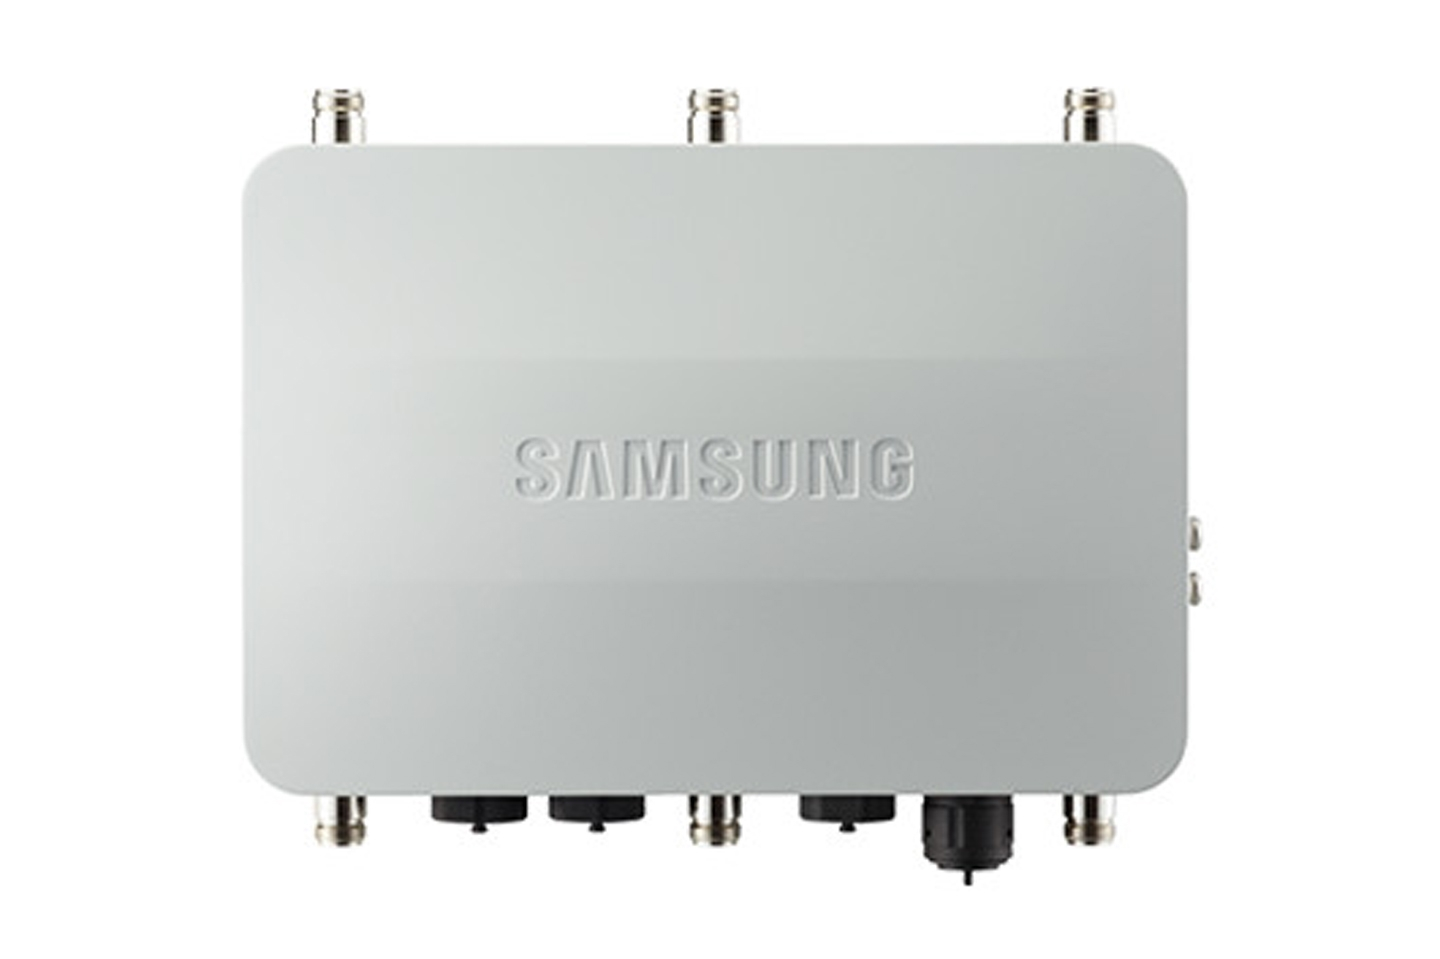 Samsung outdoor access points